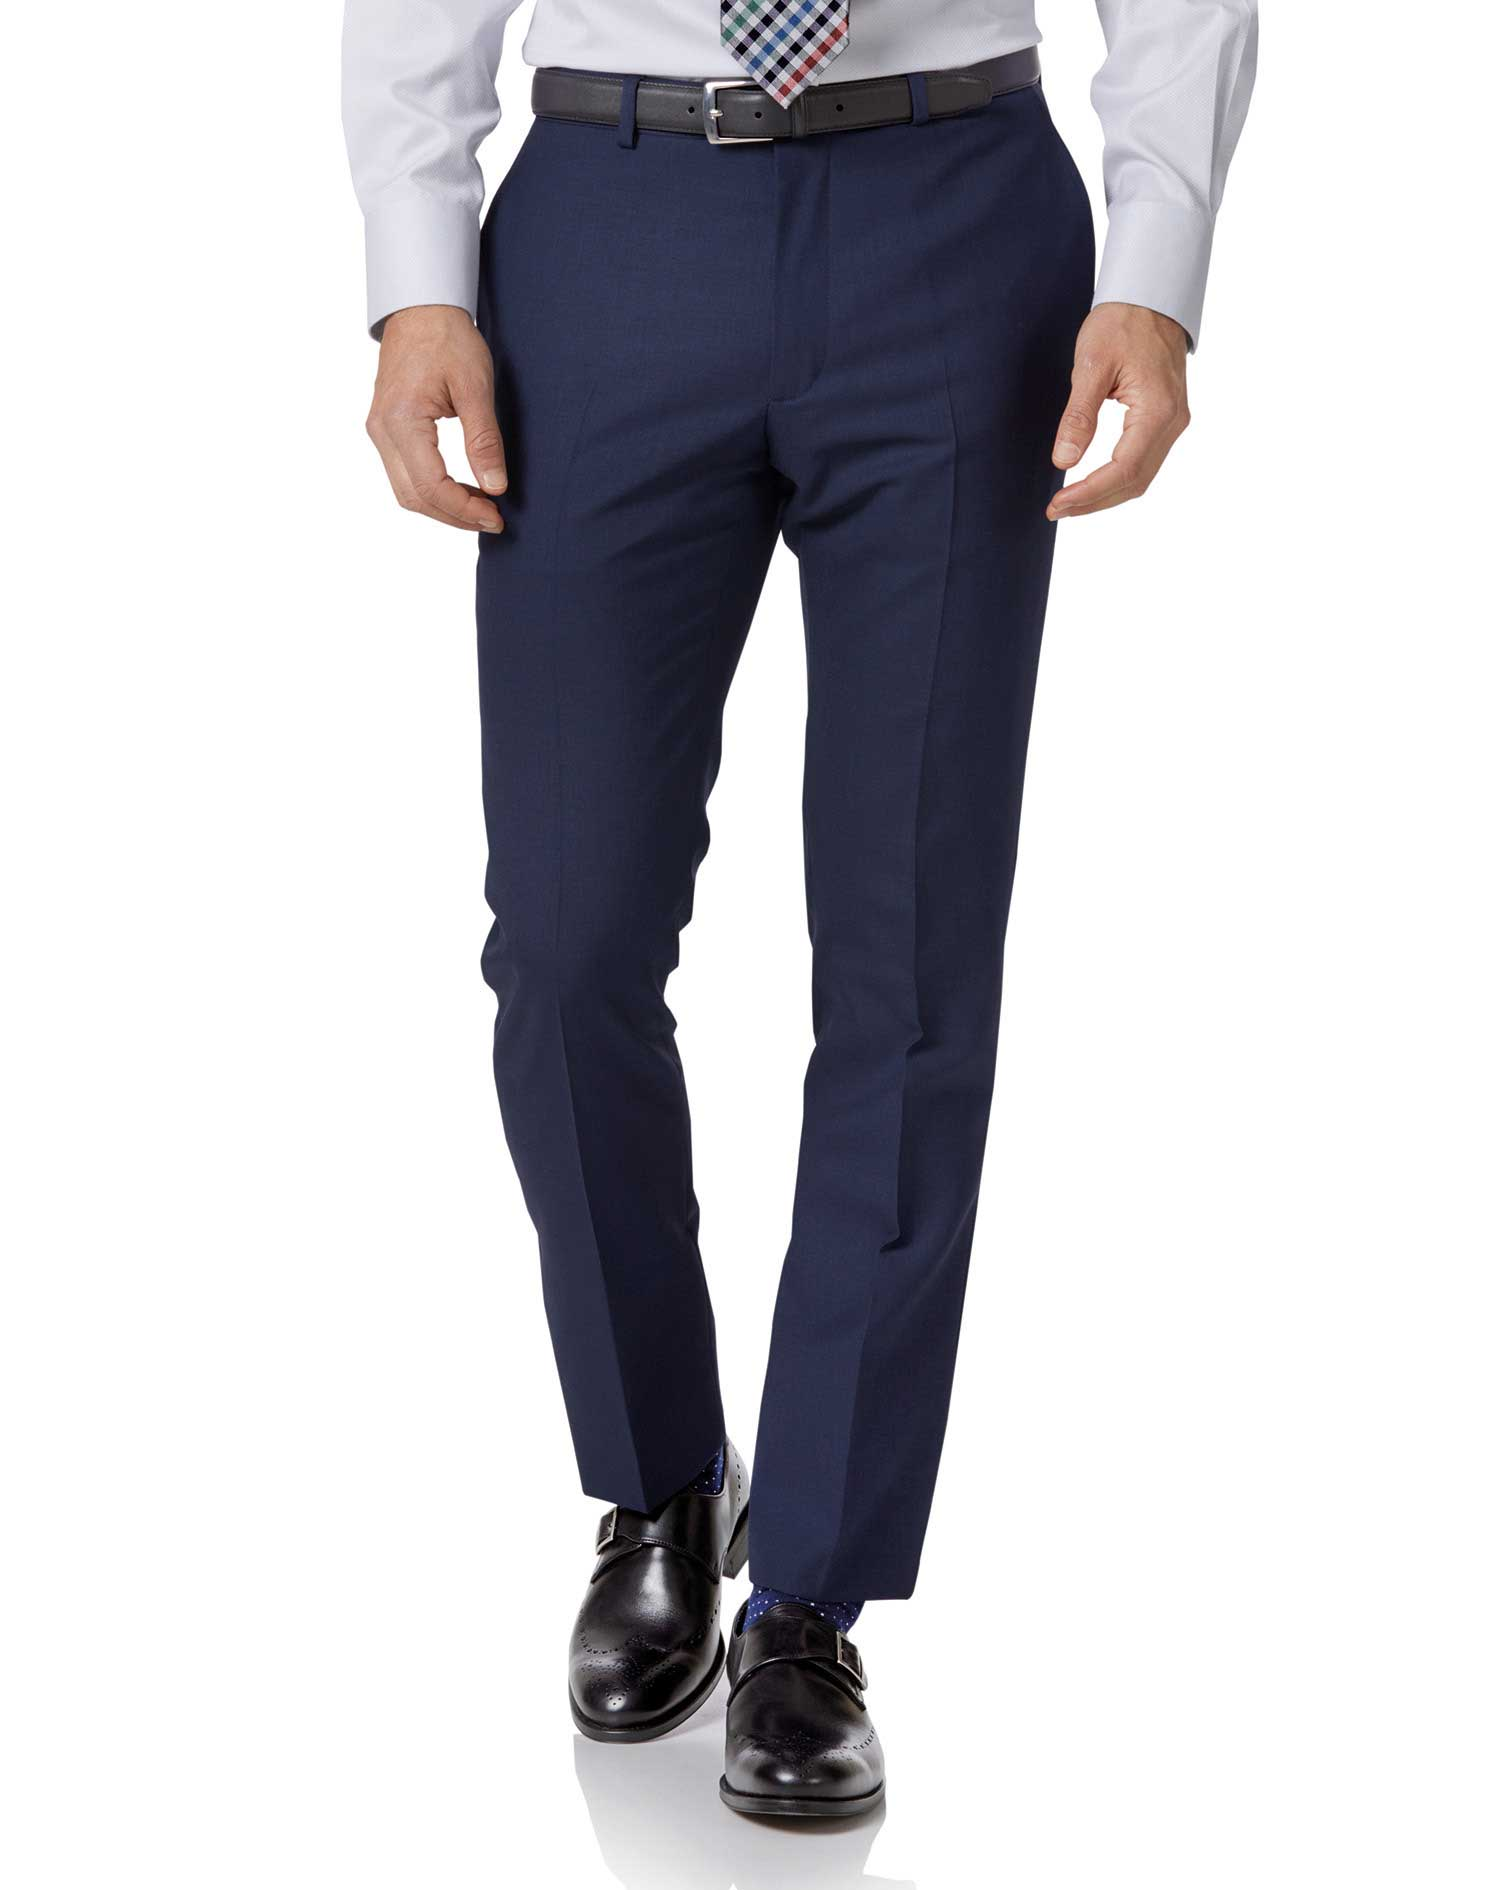 Royal Blue Extra Slim Fit Merino Business Suit Trousers Size W34 L38 by Charles Tyrwhitt